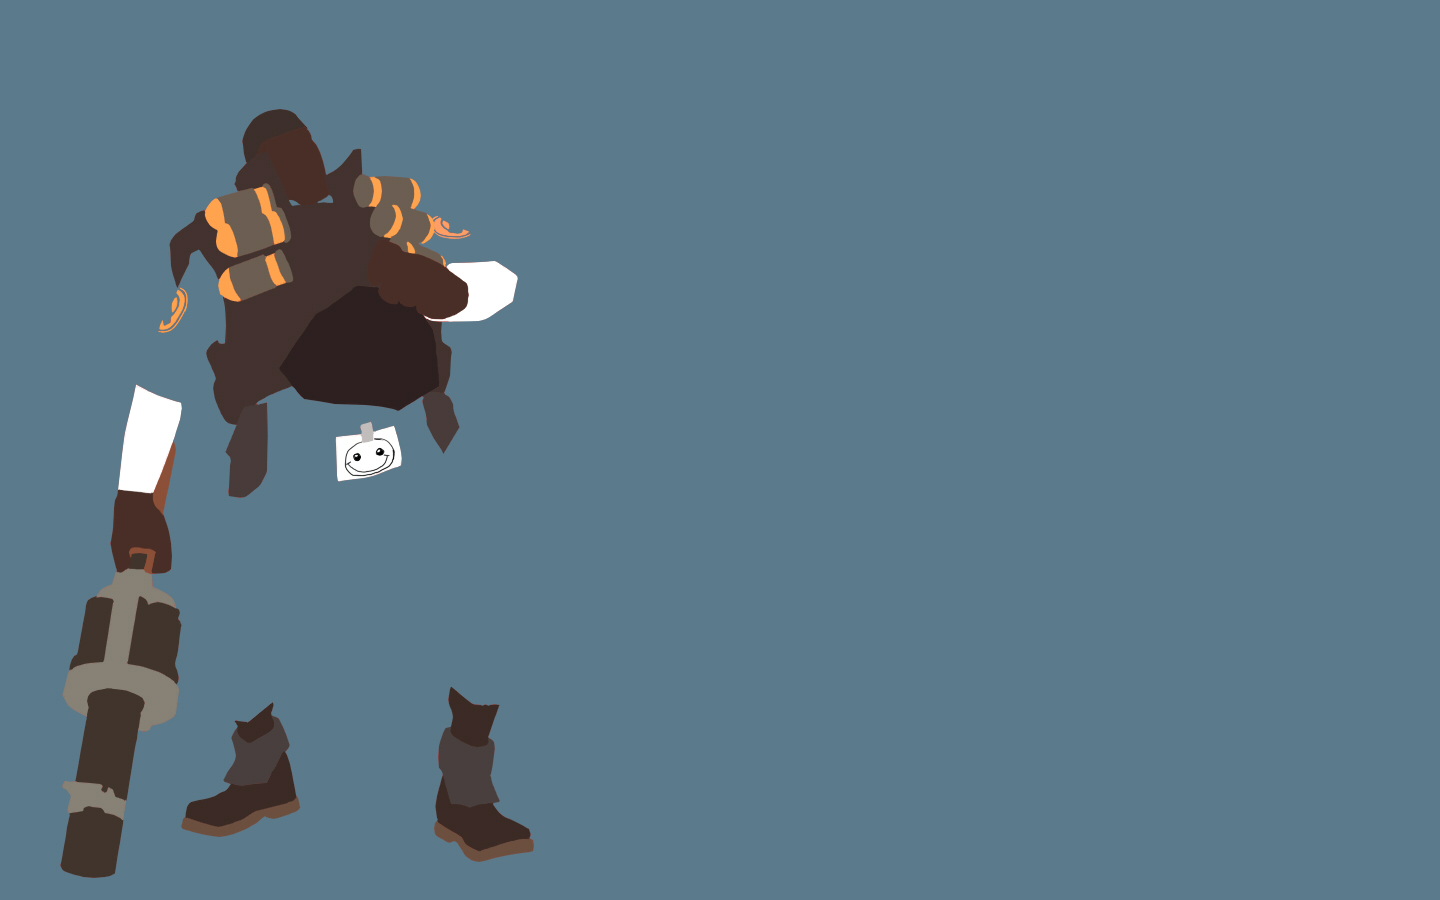 TF2 Blu Demoman Minimalist Wallpaper by bohitargep 1440x900